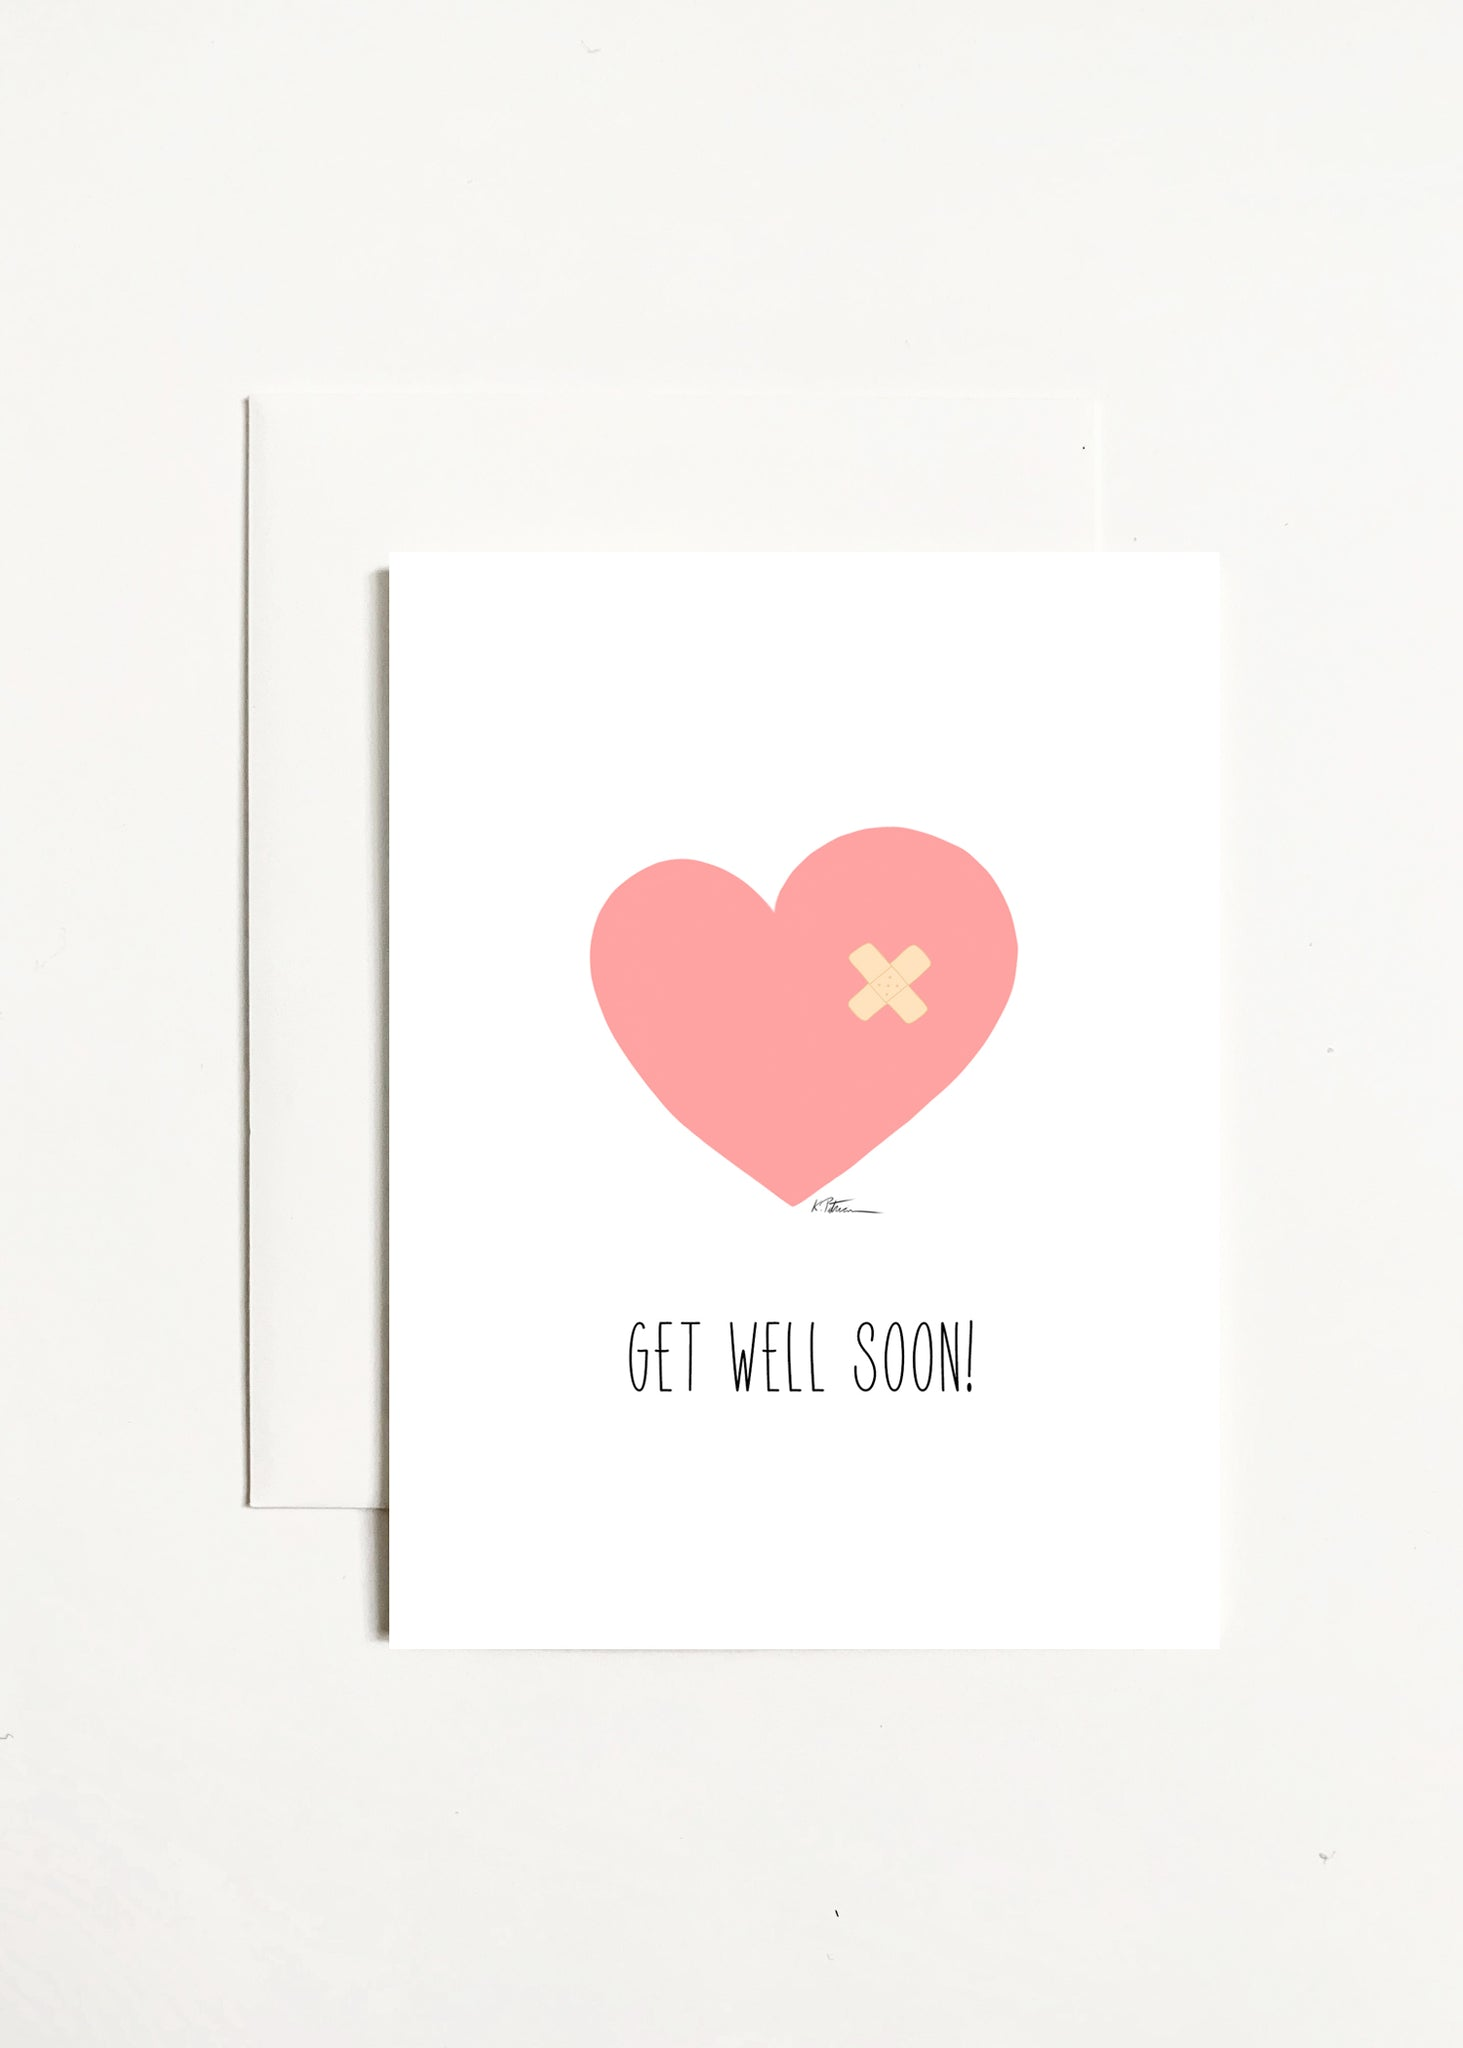 Get Well Soon! - Heart With Band Aid